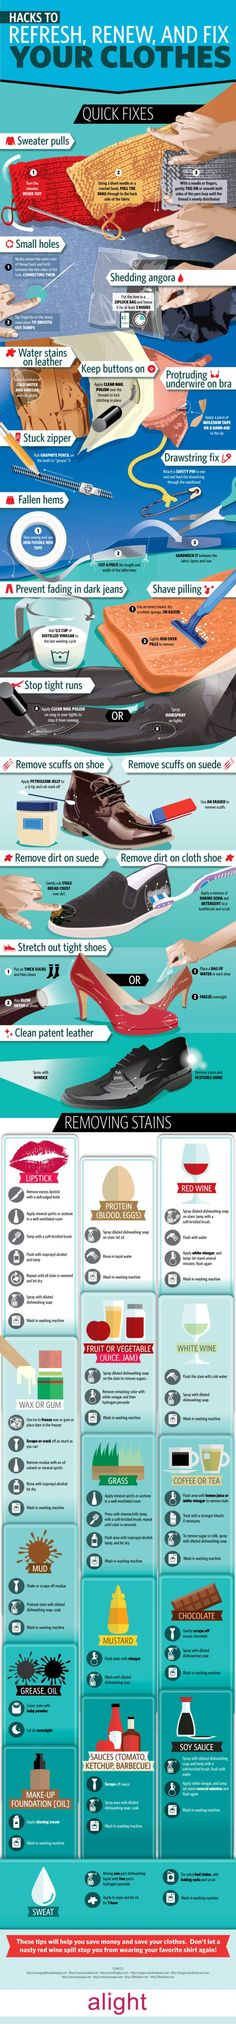 This Graphic Shows You How to Repair Common Clothing Problems